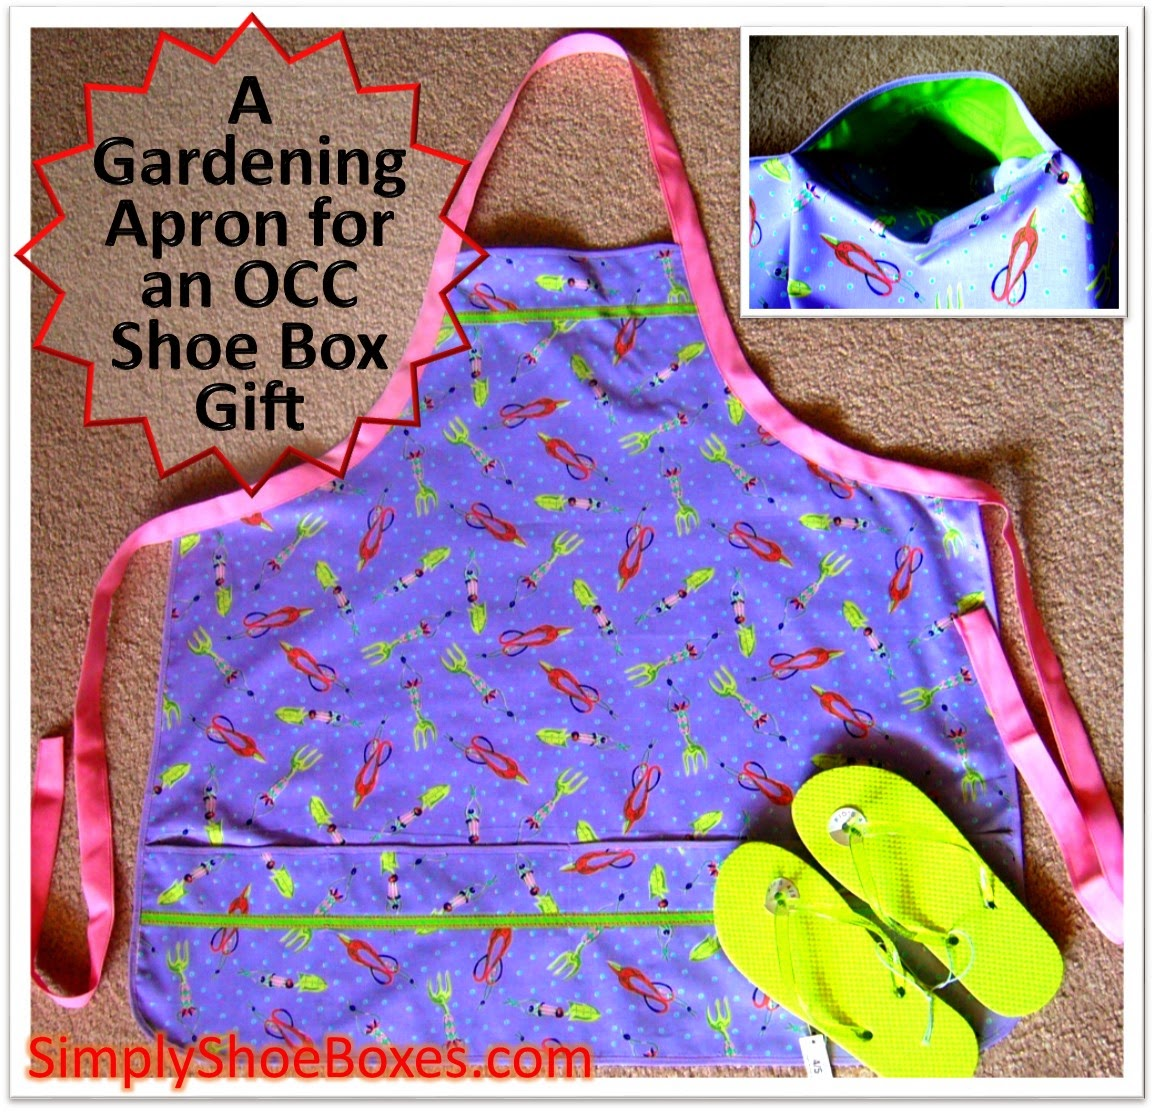 Garden Apron for OCC shoe box